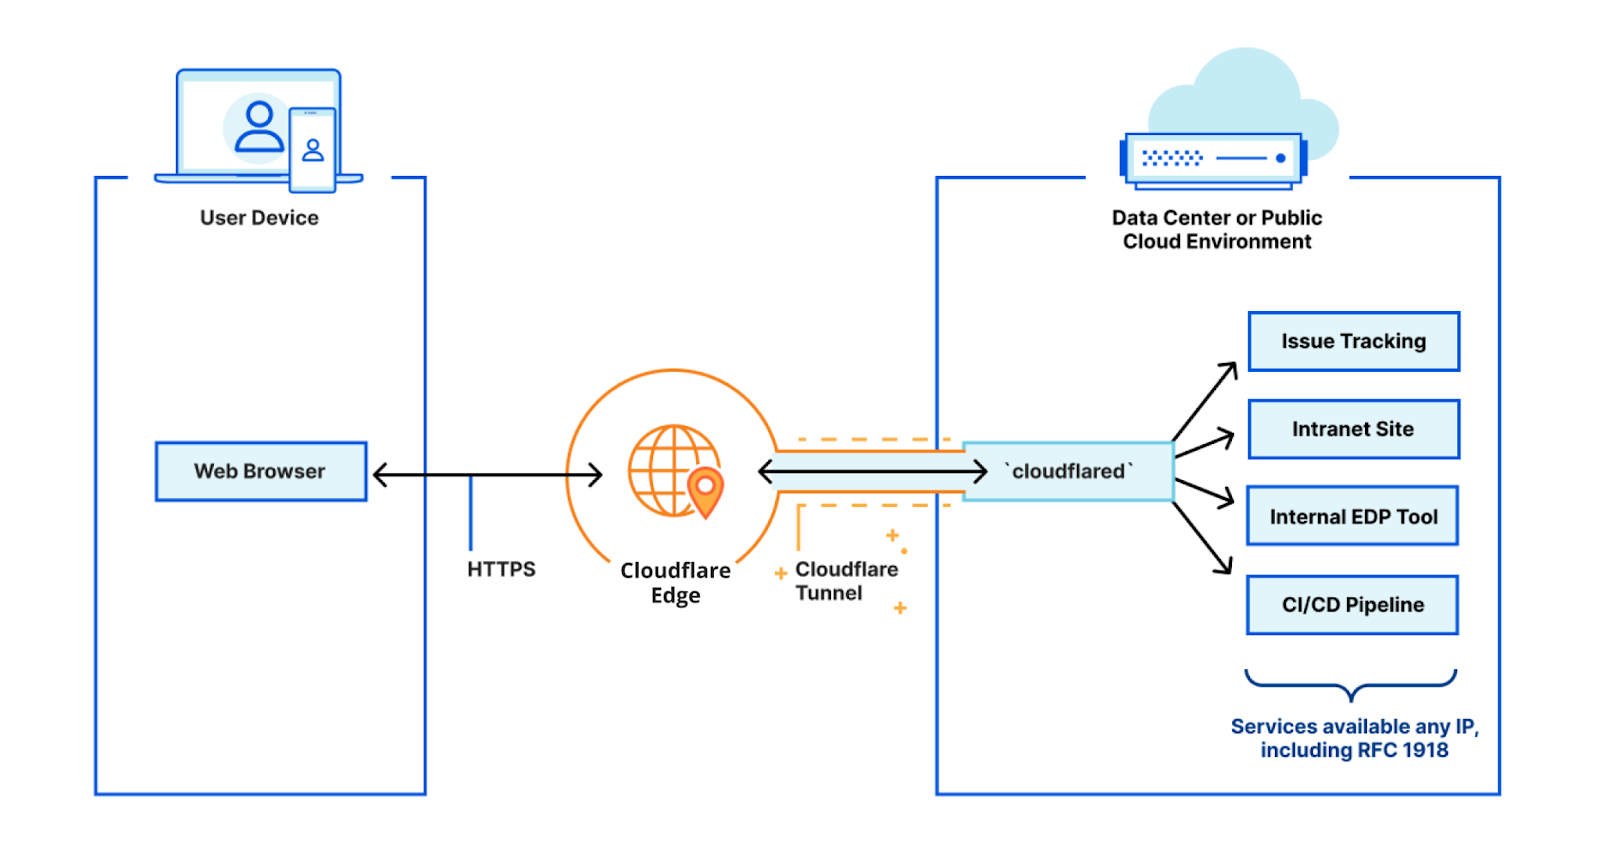 Getting Cloudflare Tunnels to connect to the Cloudflare Network with QUIC